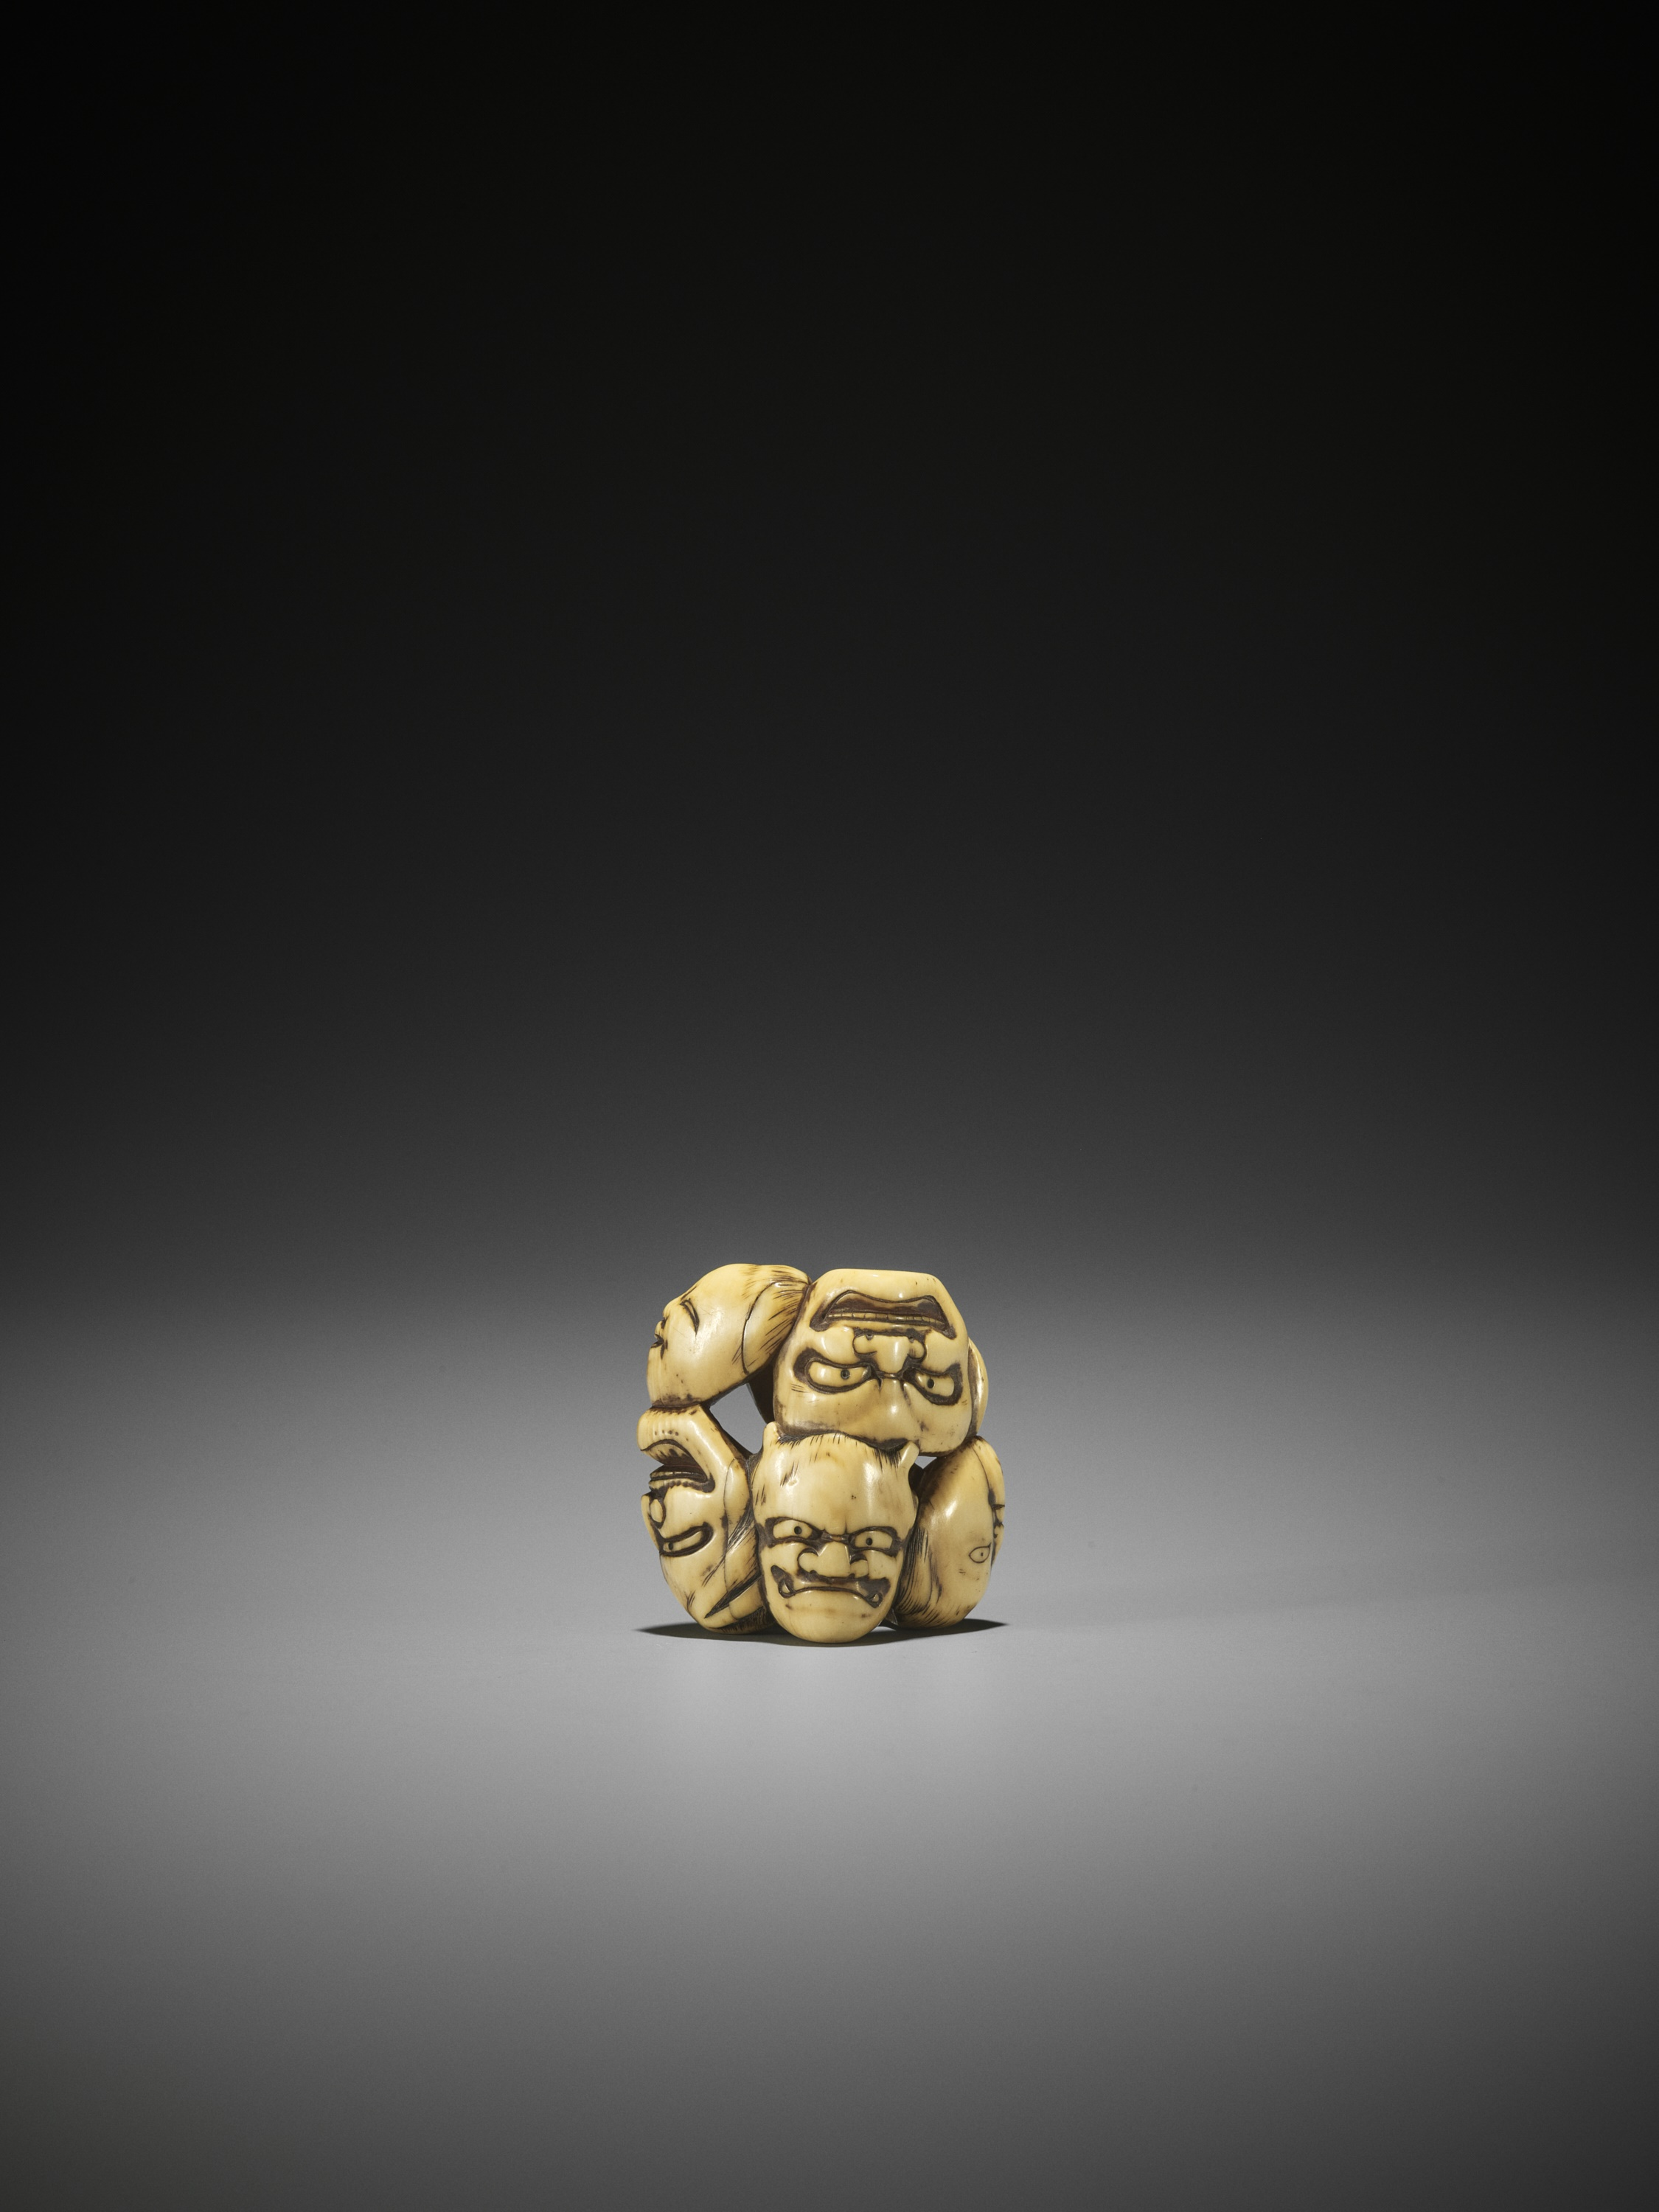 AN IVORY NETSUKE OF A GROUP OF SEVEN MASKS - Image 2 of 8